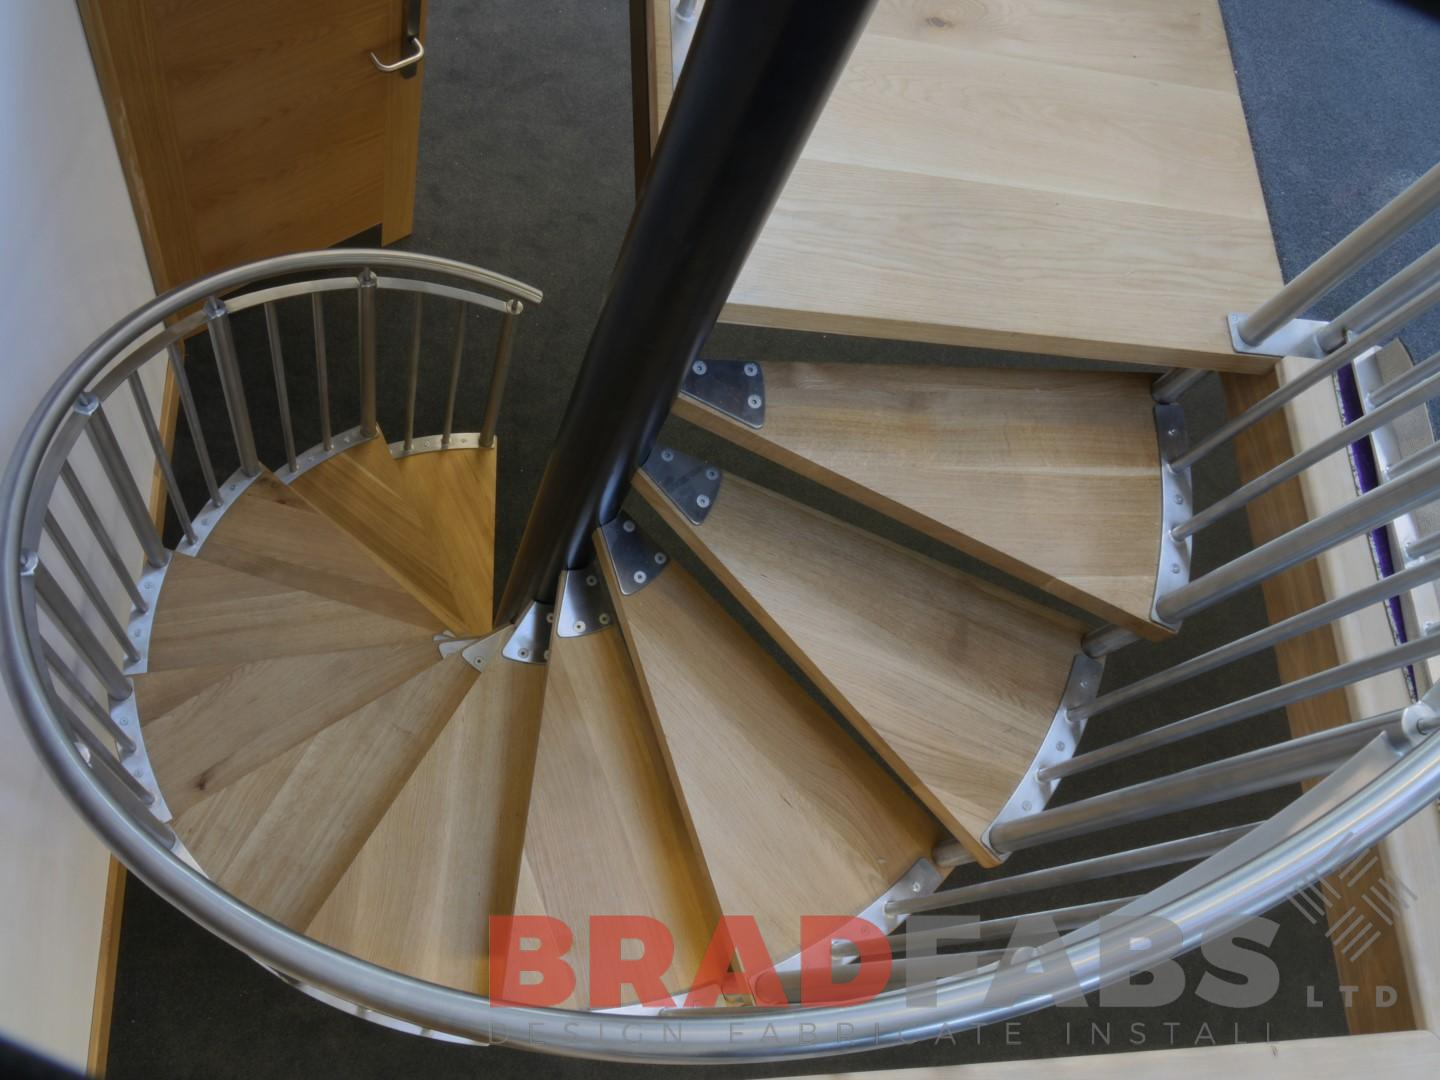 Bradfabs designed and installed this unique oak stainless spiral staircase, installed in Yorkshire